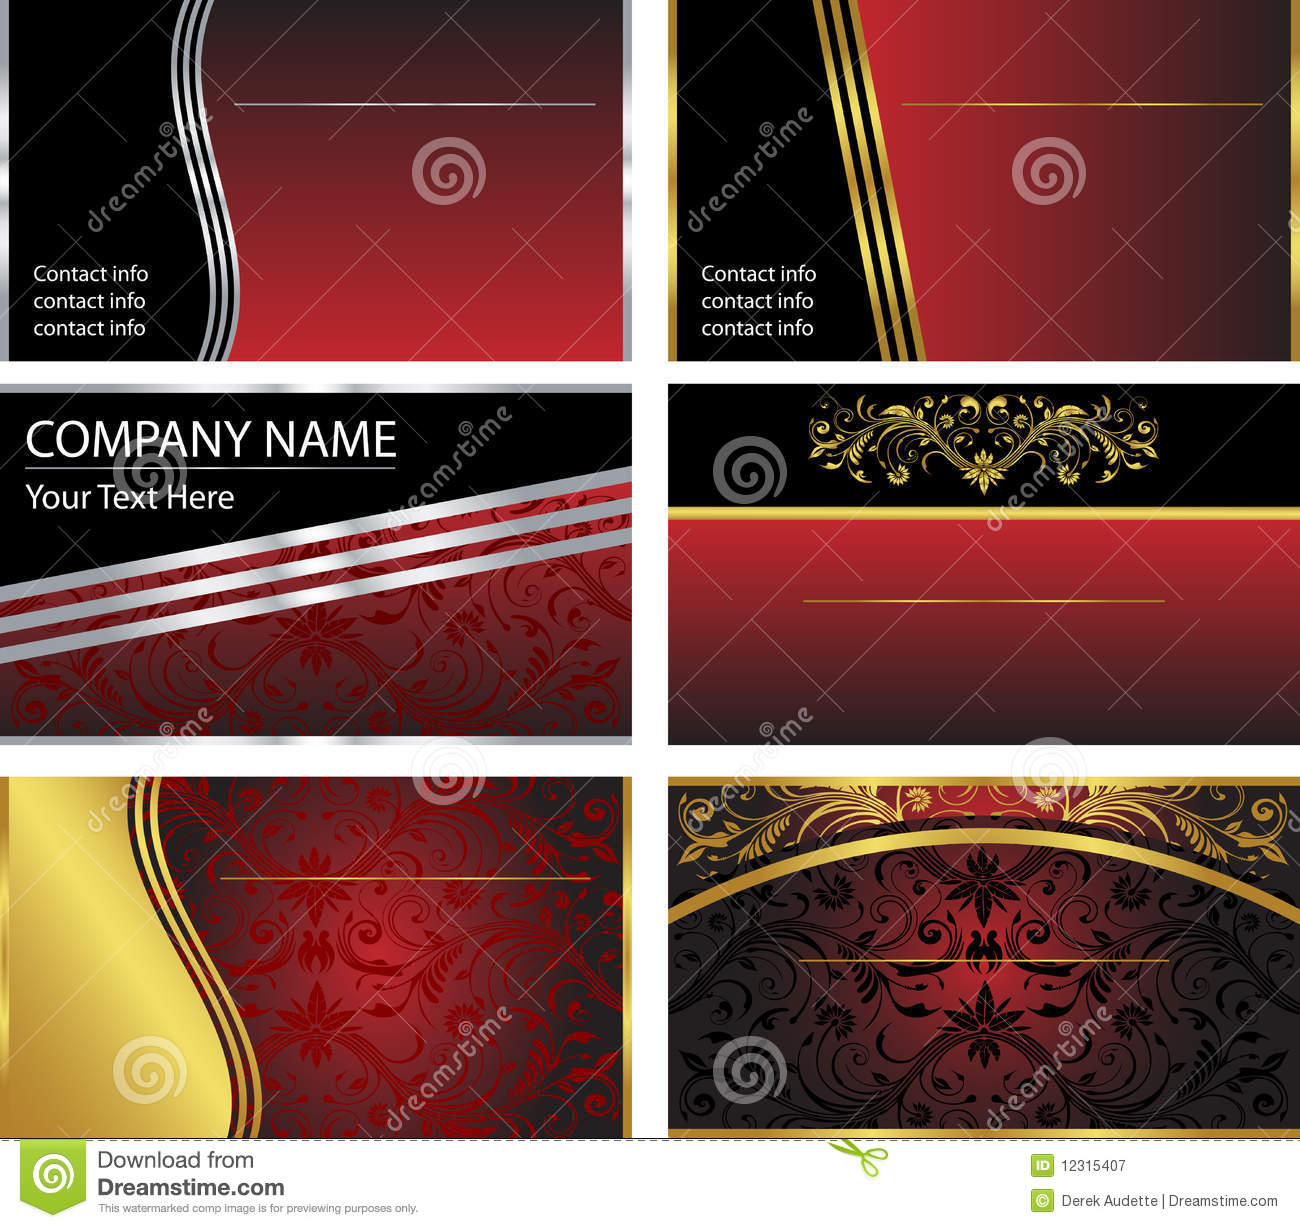 Six vector business card templates stock vector illustration of six vector business card templates flashek